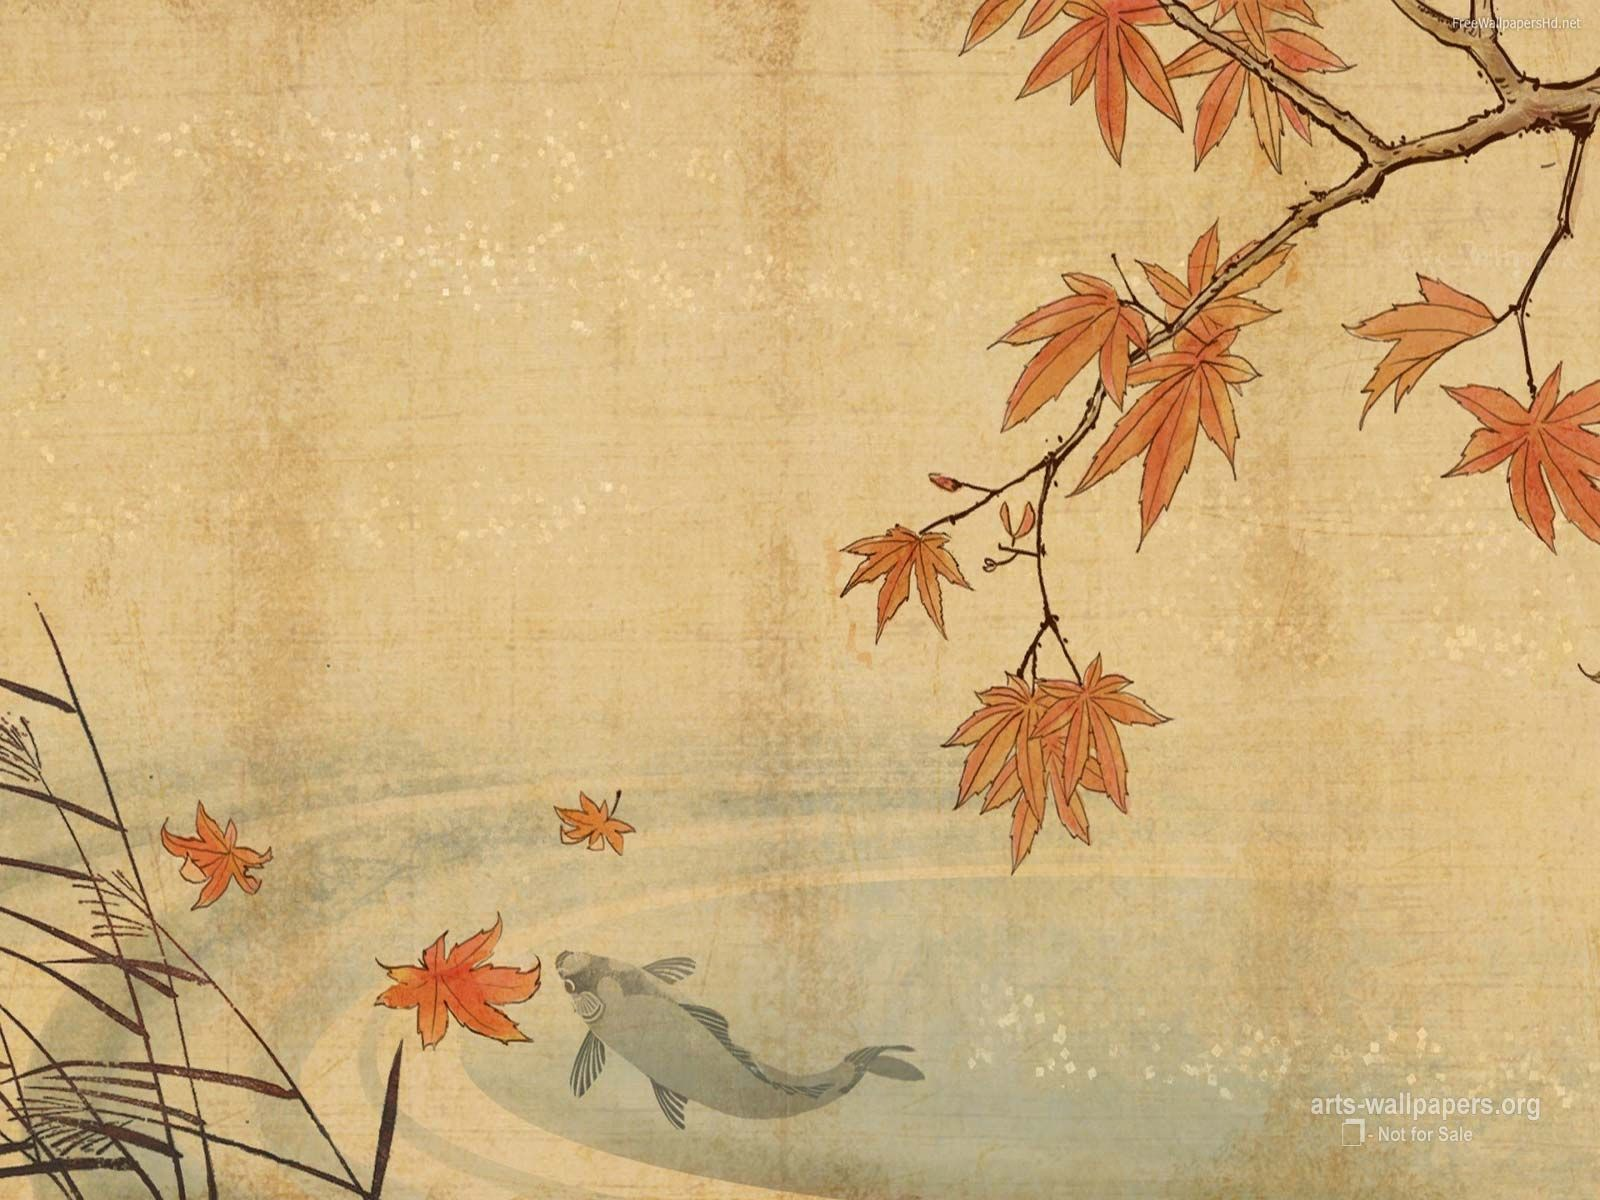 Asian Art Wallpaper Top Hd Wallpapers Japanese Art Art Wallpaper Asian Wallpaper